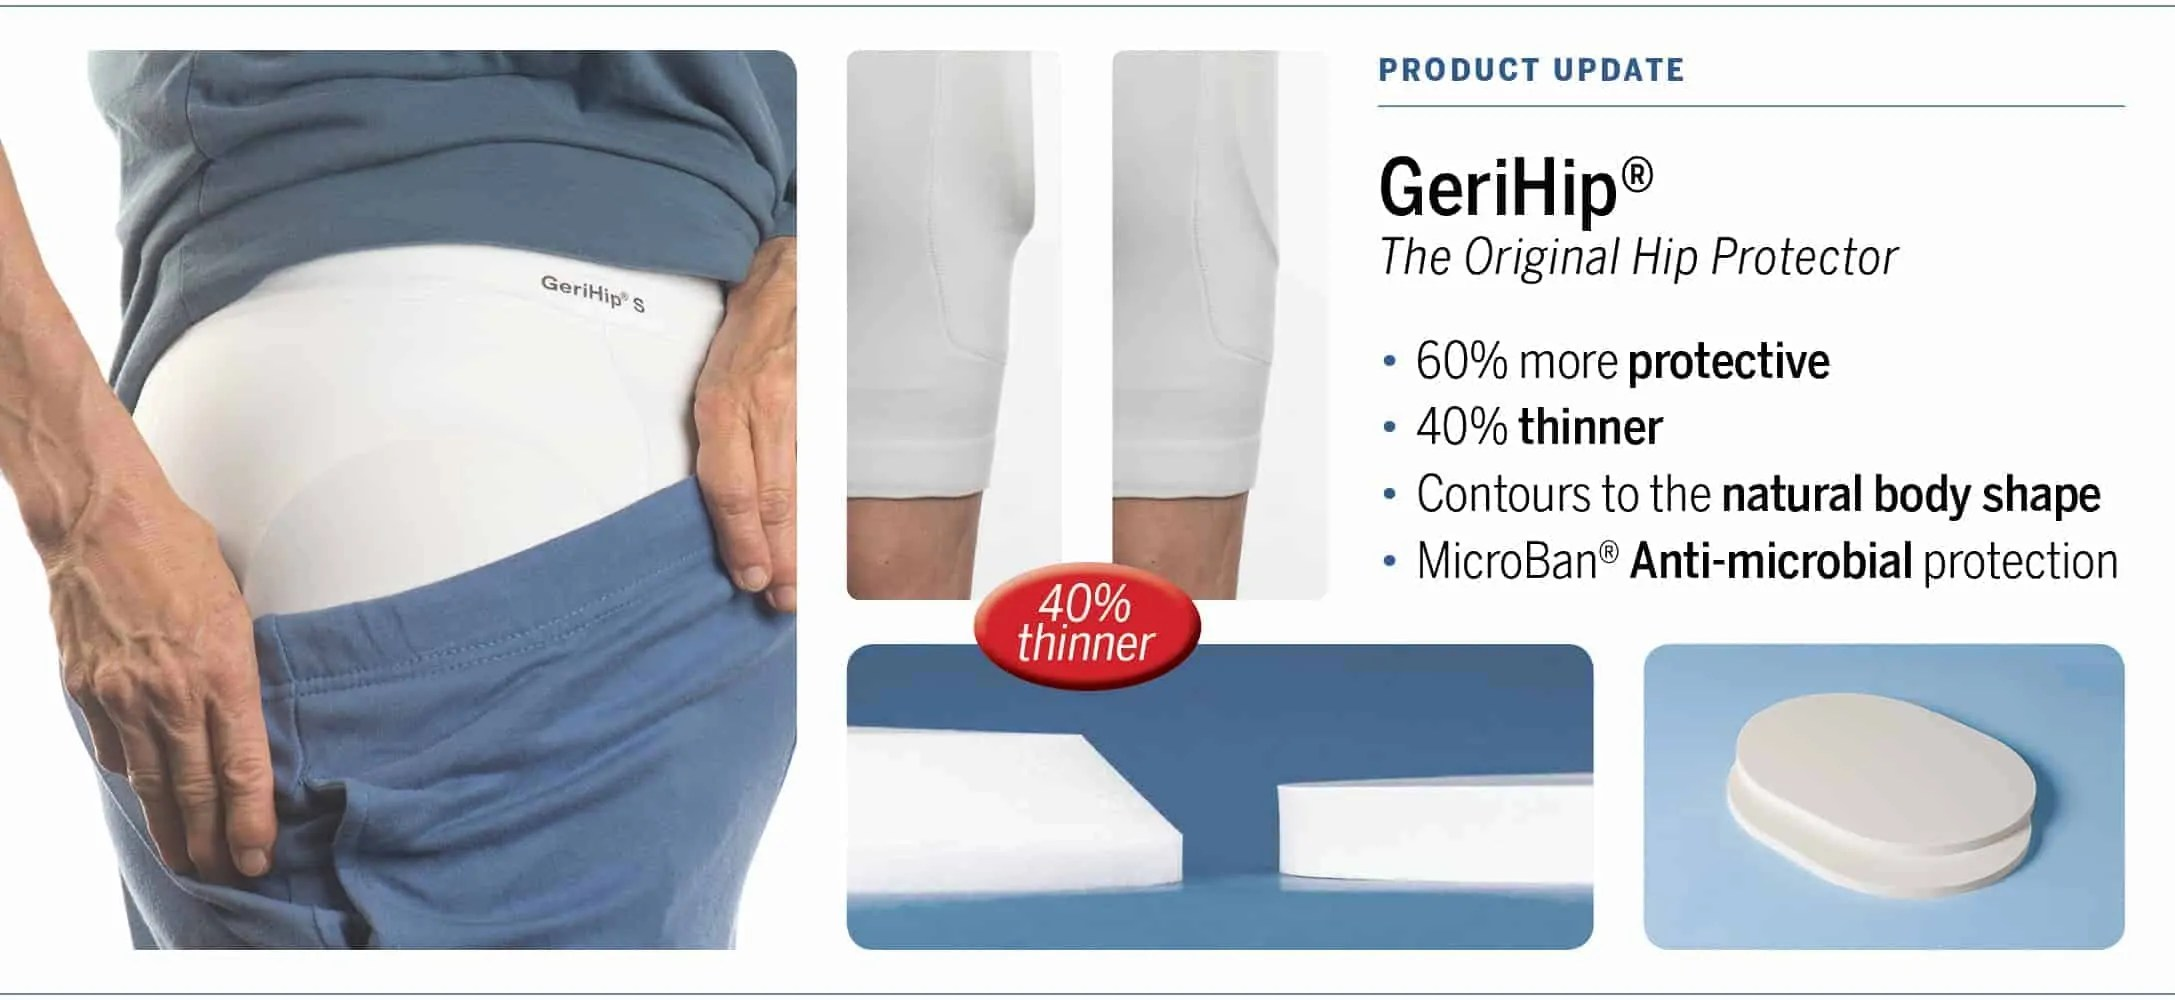 Geri Hip Product Pads